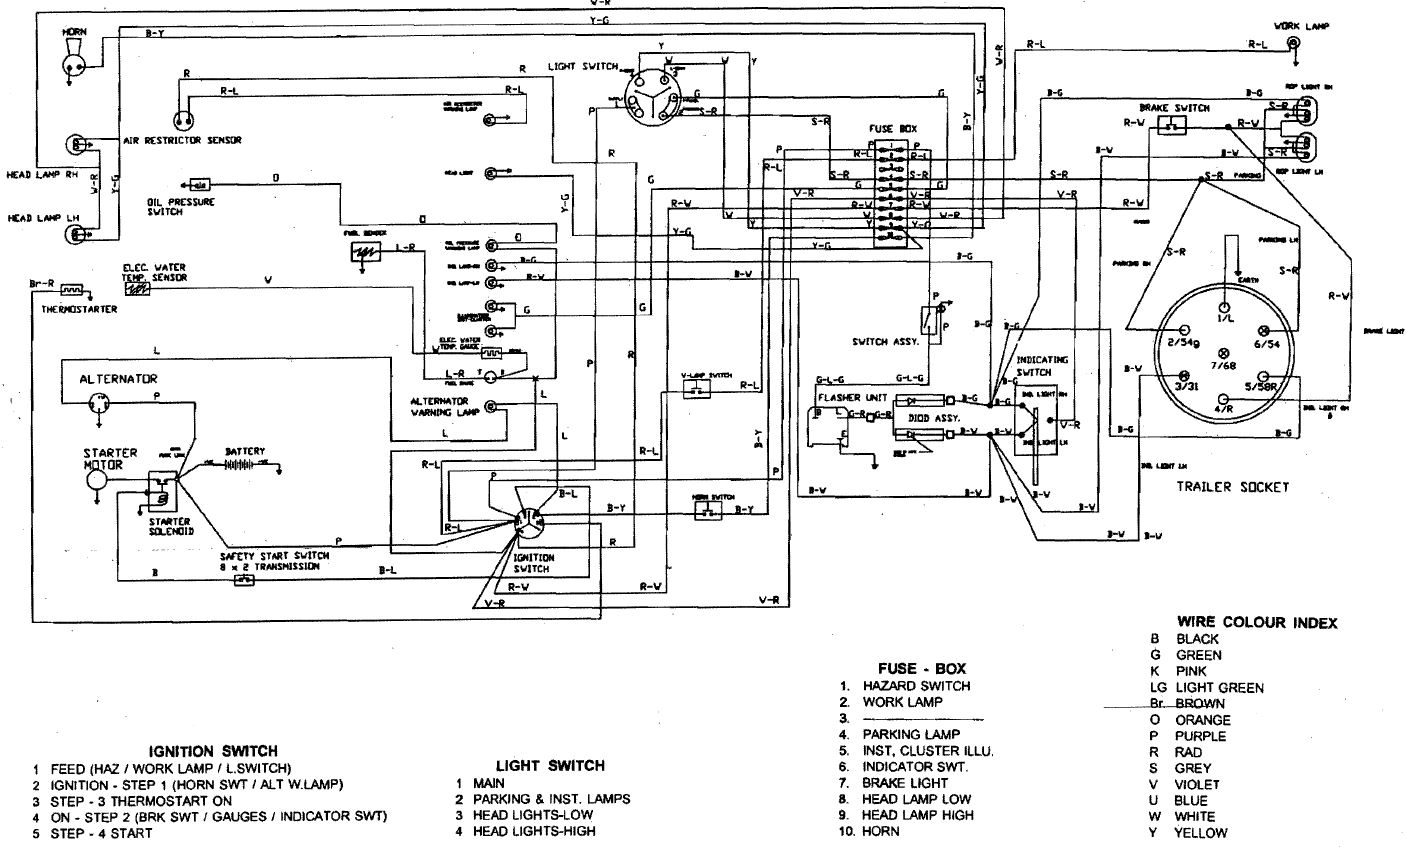 Ih 656 Wiring Diagram